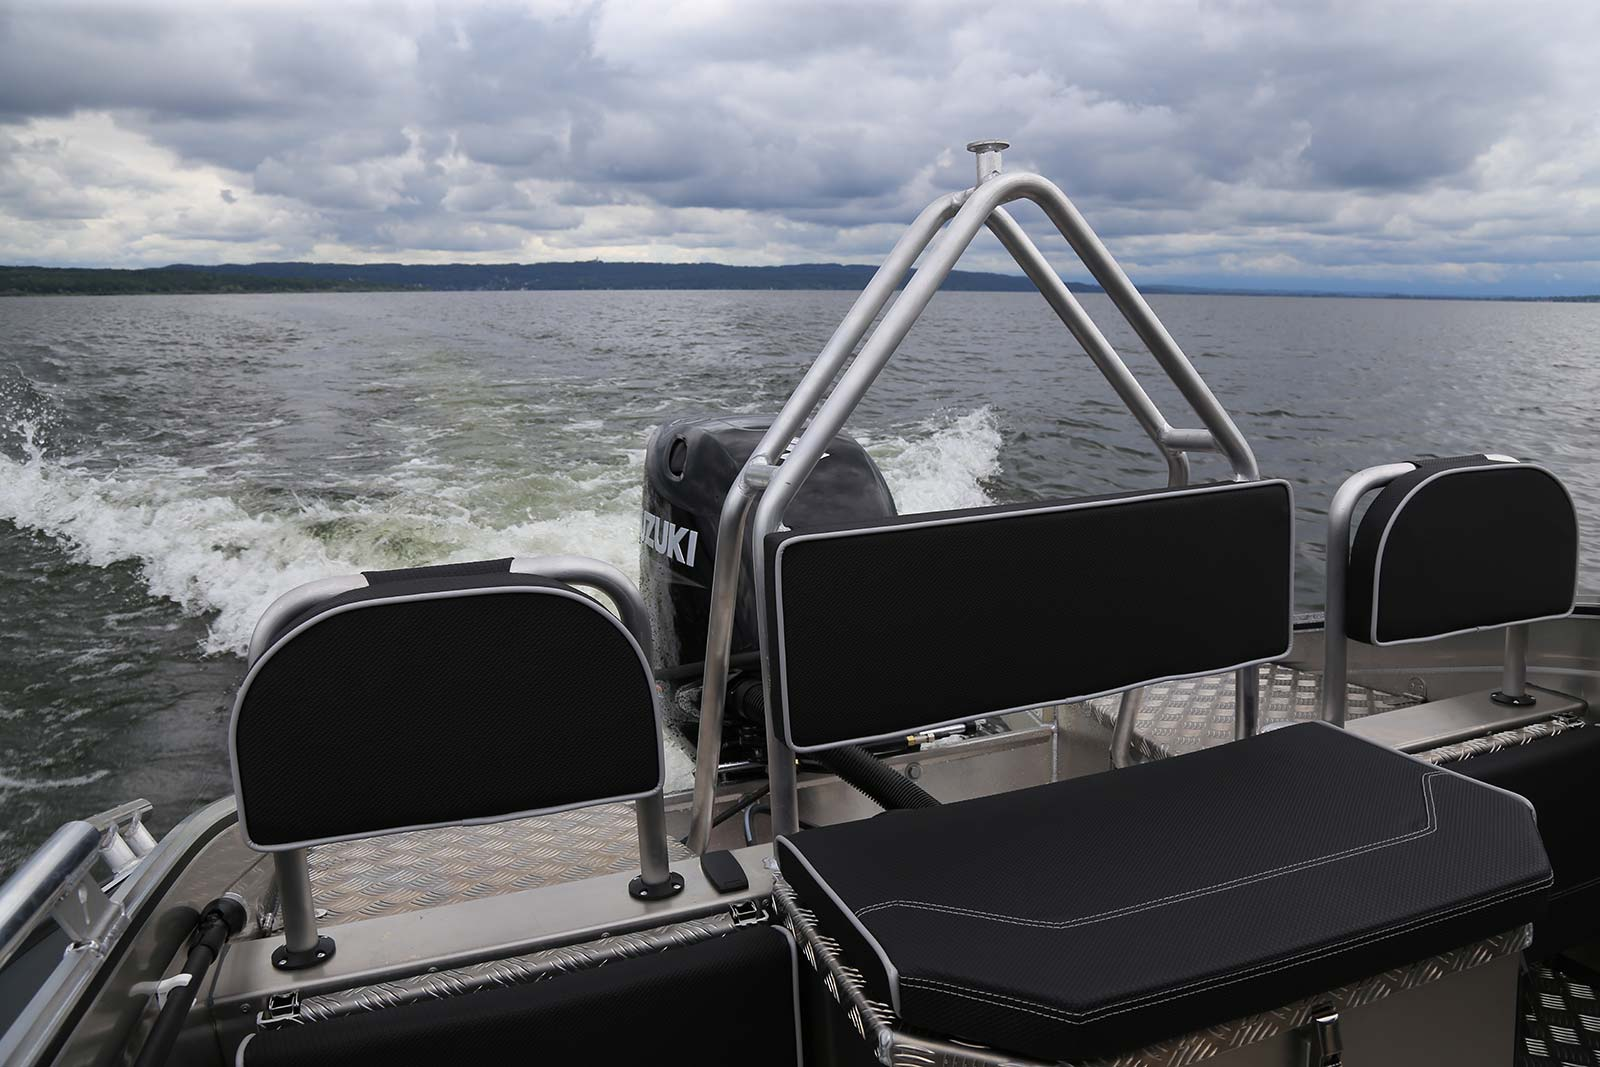 SALE: Silver Shark CCX mit 140 PS Suzuki I Boat Solutions, Utting am Ammersee